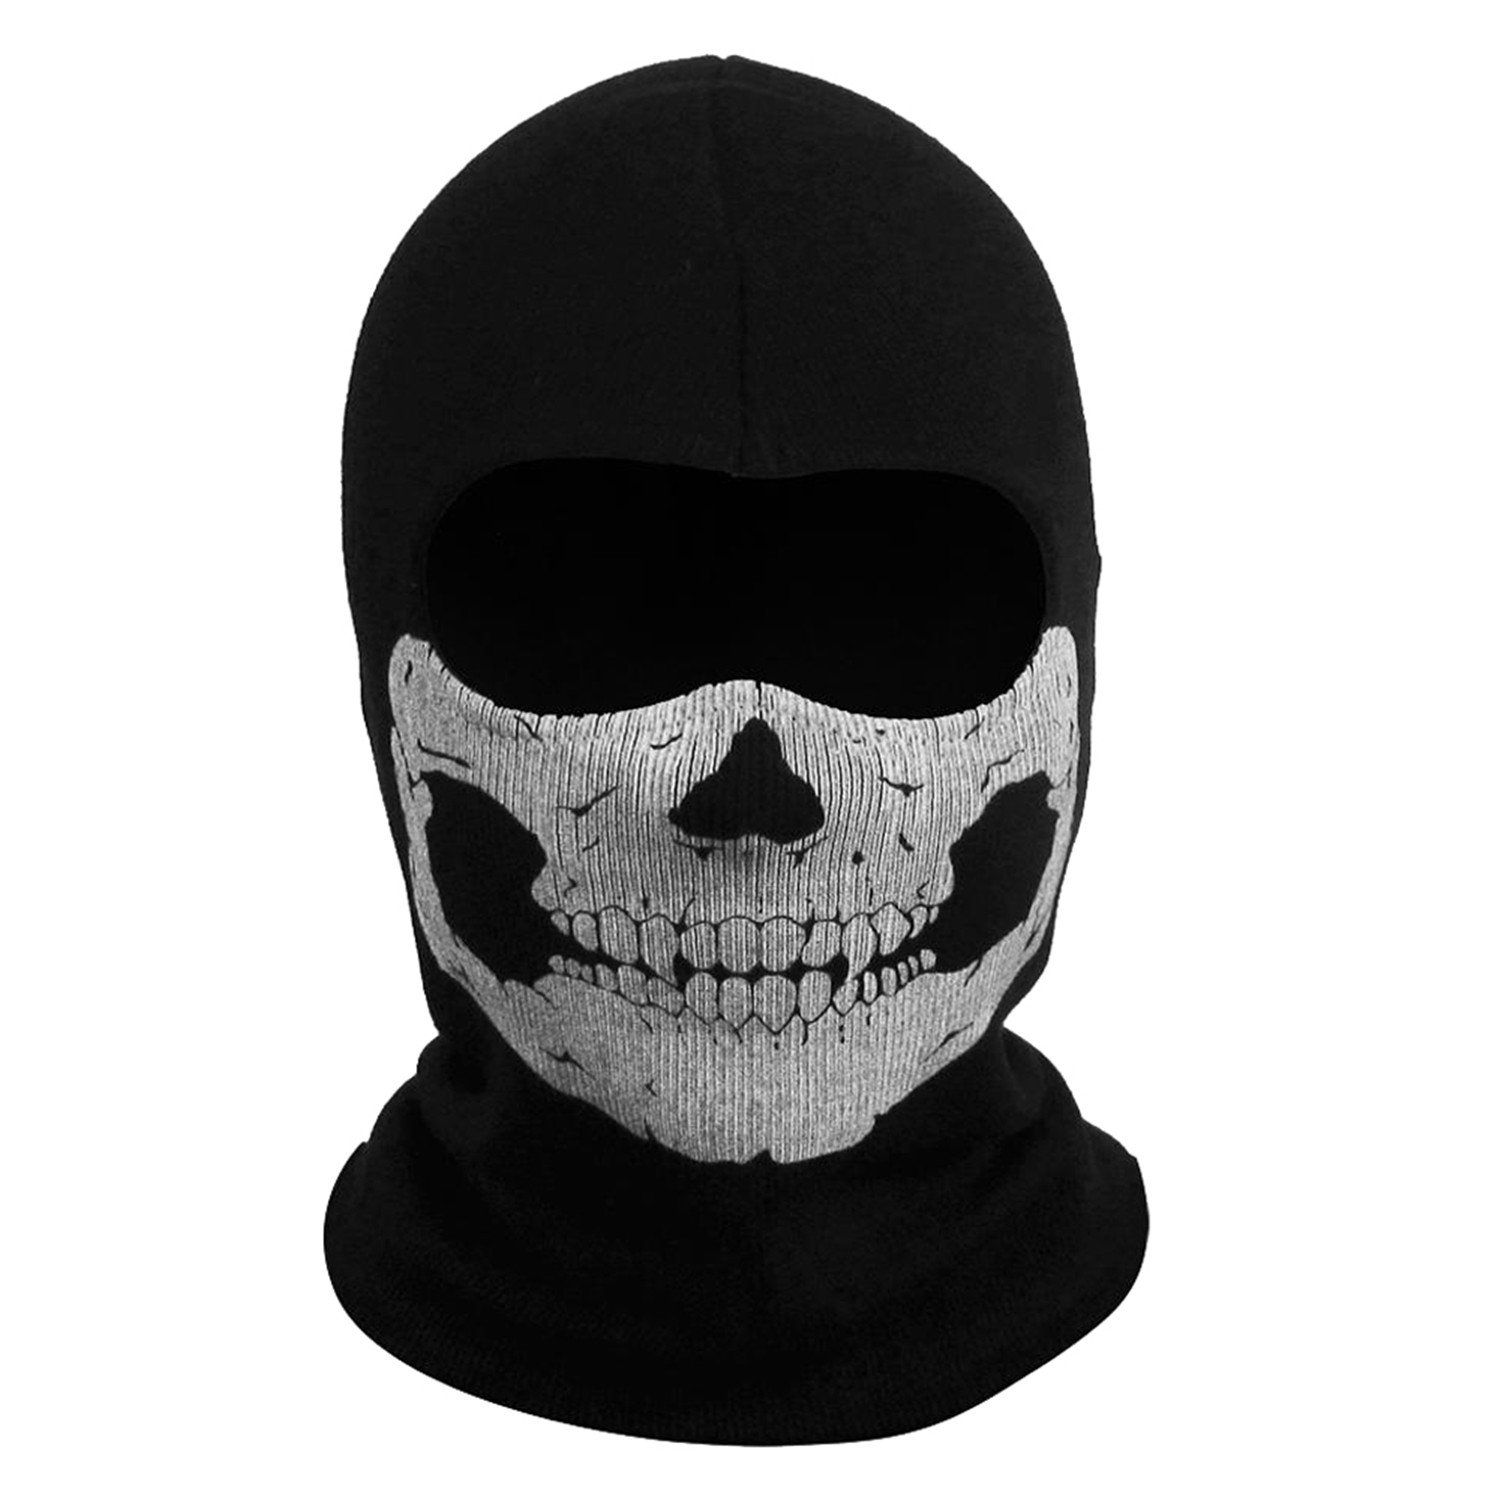 Call Of Duty 10 Cod Ghost Balaclava Logan Skull Face Mask Hood